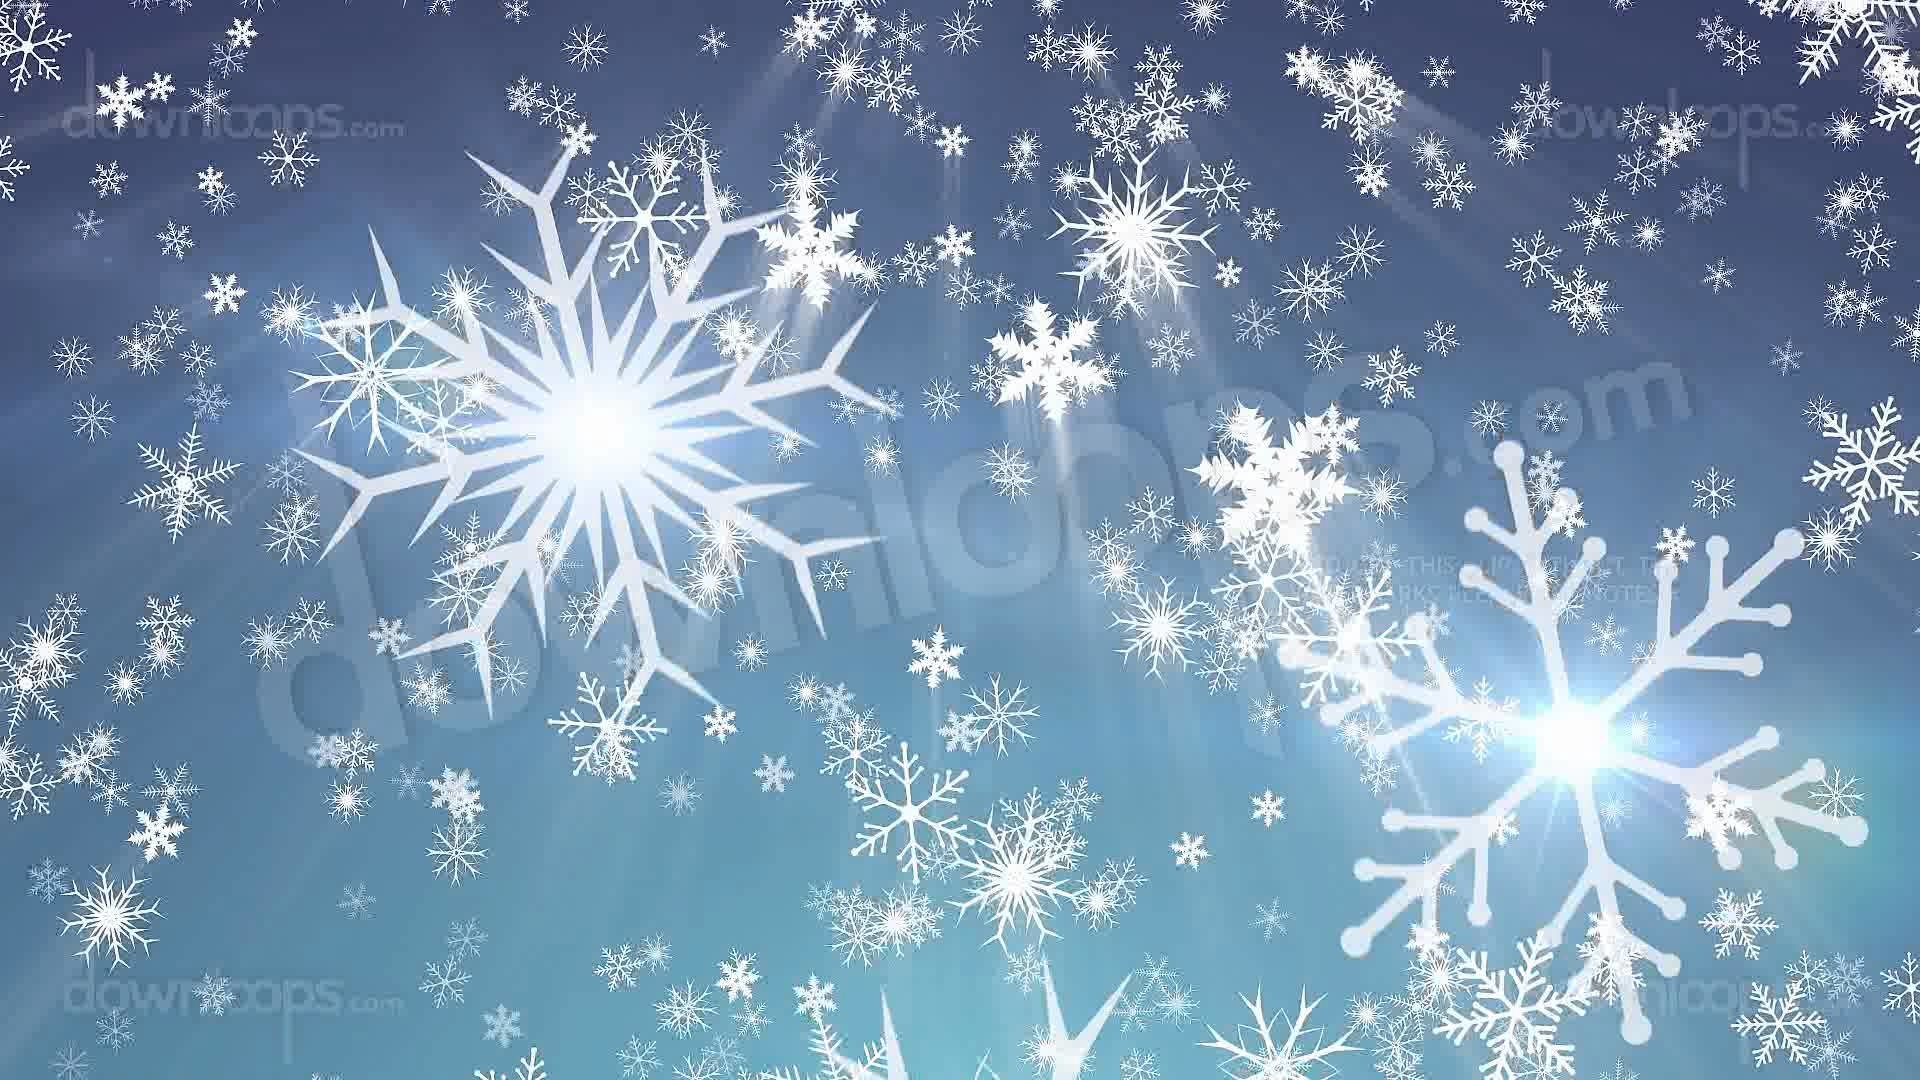 Animated Girls Wallpaper For Desk Tops Christmas Wallpaper Moving Snow Falling 72 Images